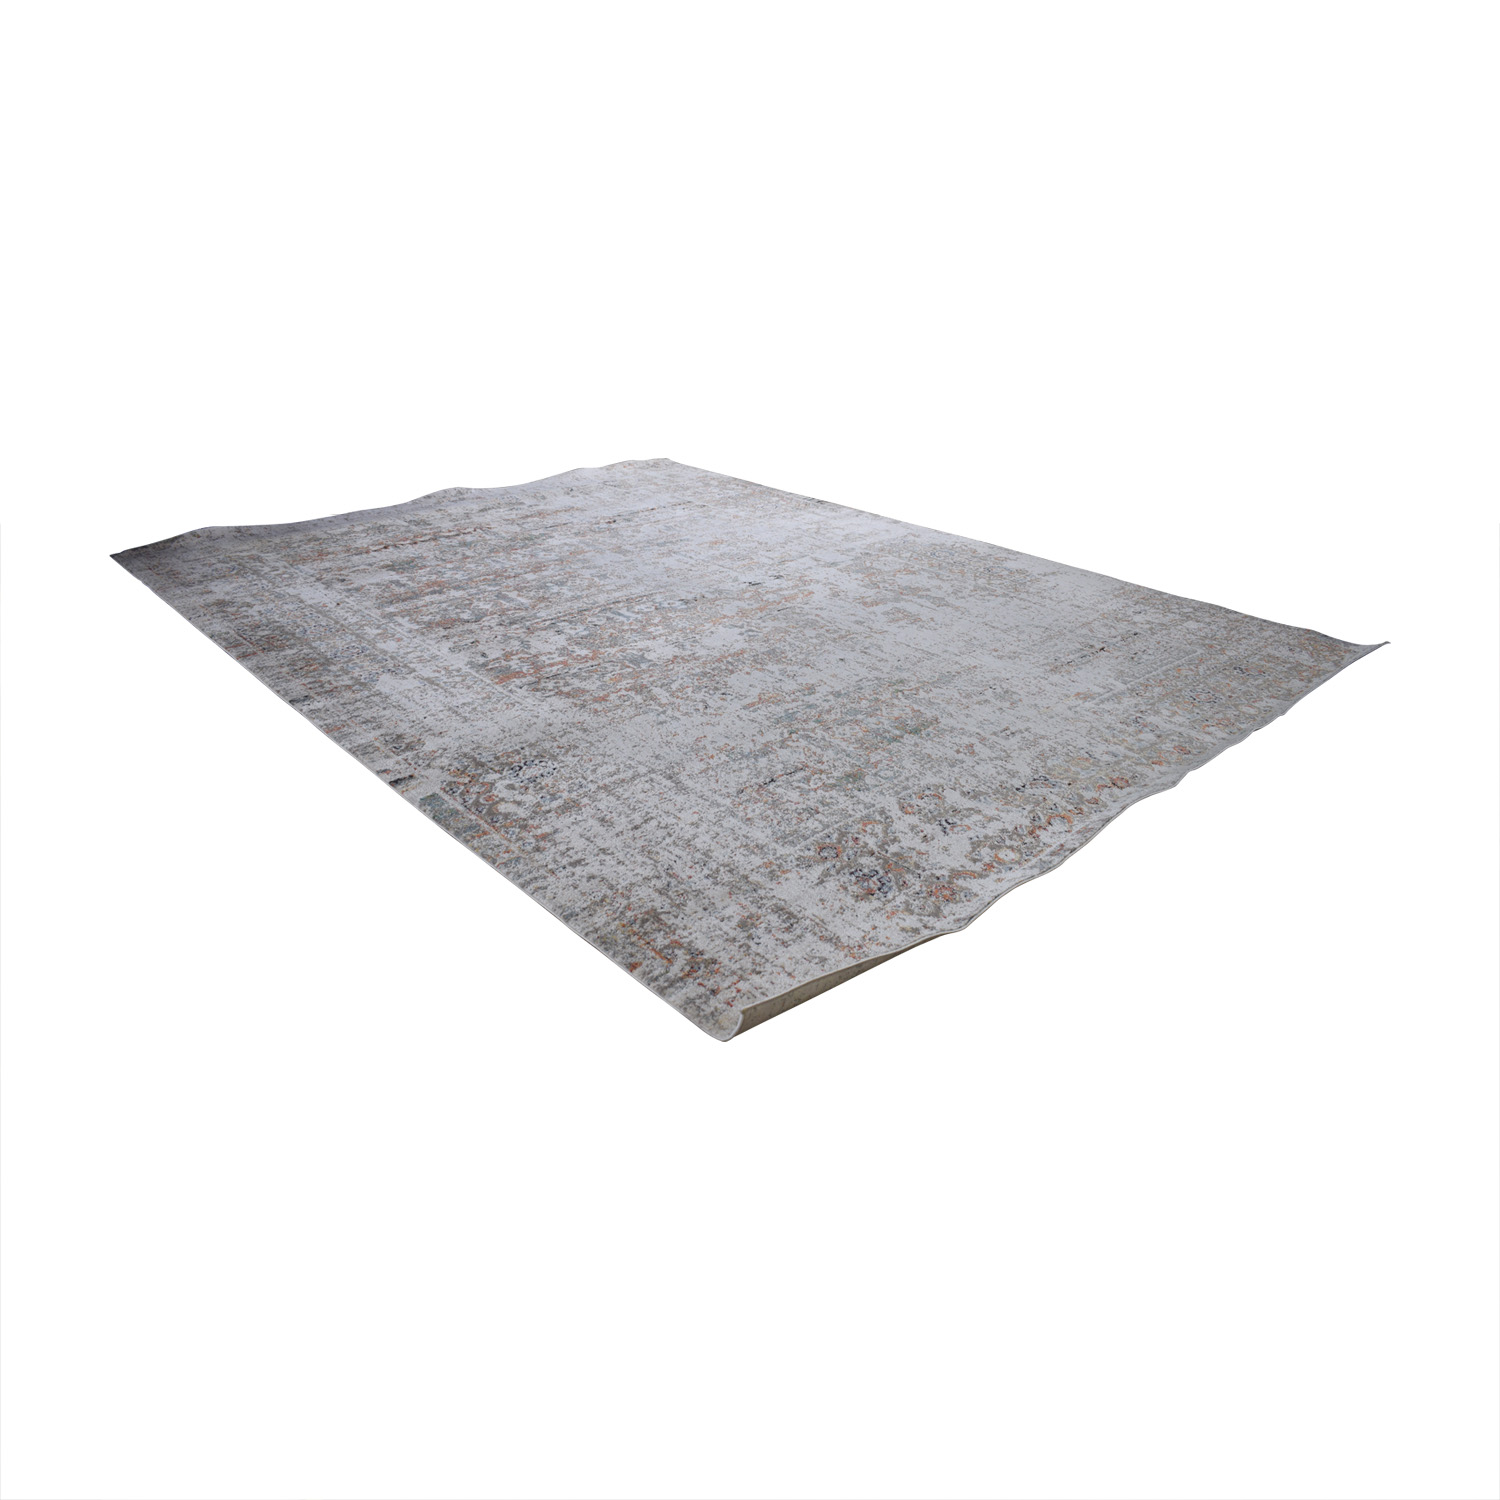 Loloi Rugs Loloi Javari Ivory and Granite Rug nj